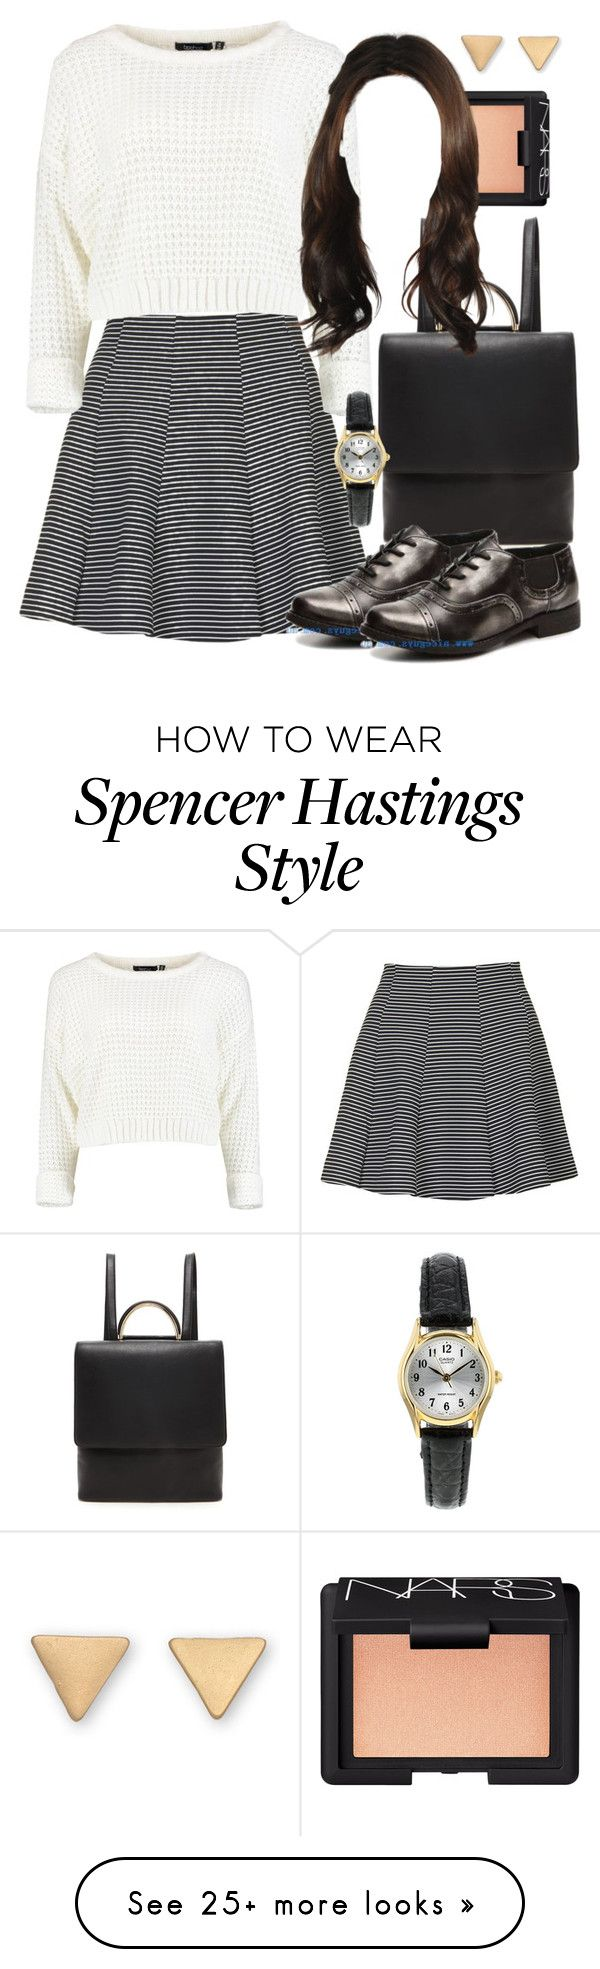 """Spencer Hastings inspired outfit with requested shoes"" by liarsstyle on Polyvore featuring Topshop, Forever 21, NARS Cosmetics, school, college and mid"